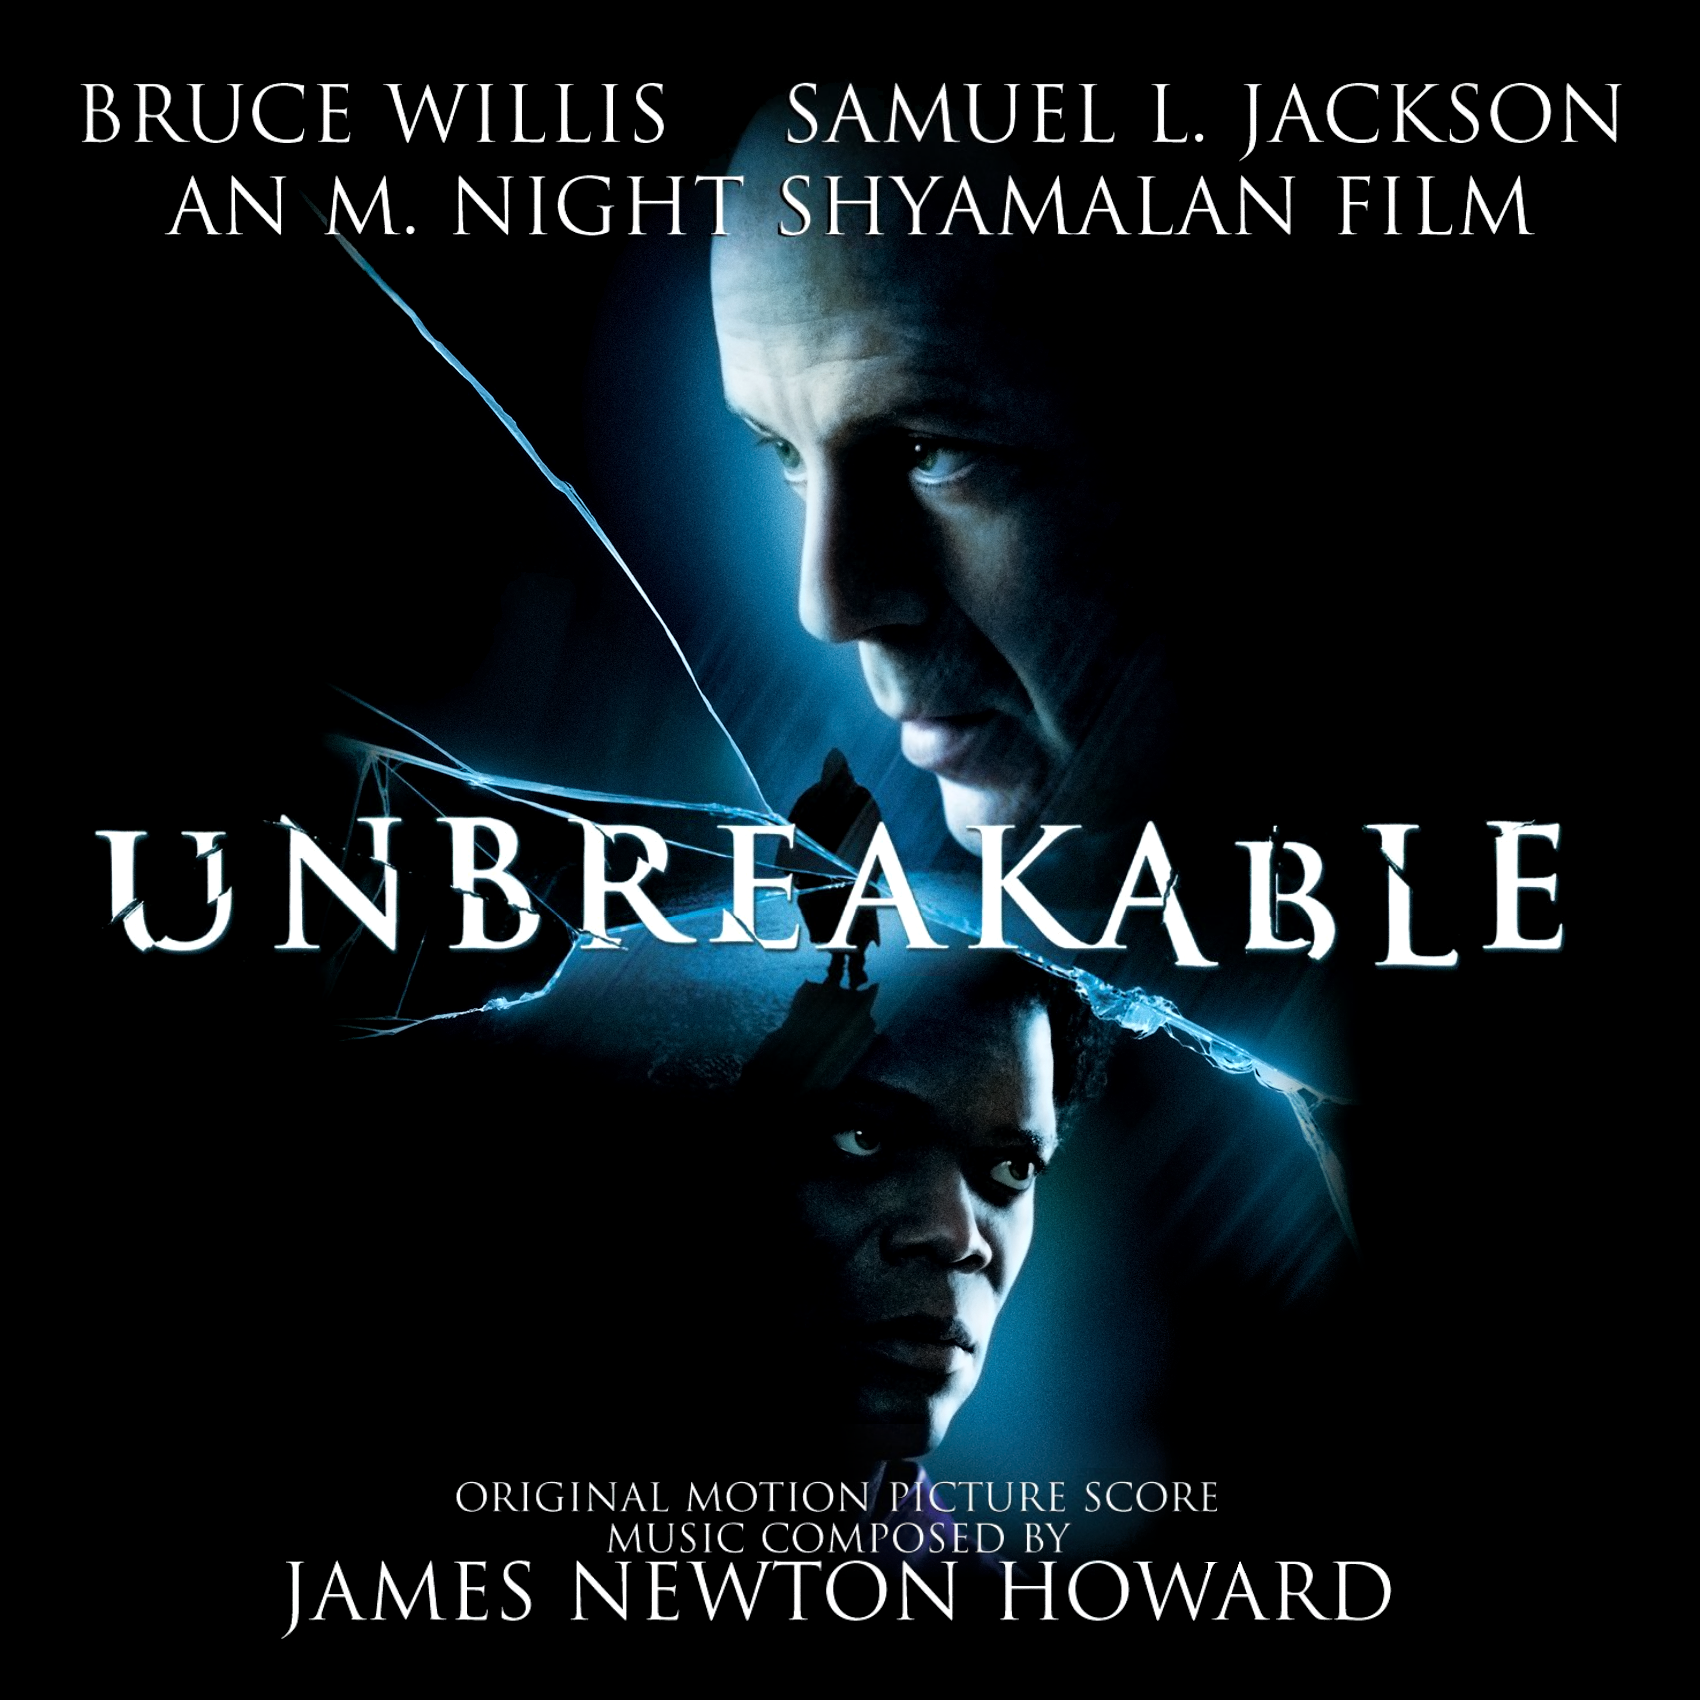 Album Artist: James Newton Howard / Album Title: Unbreakable (Original Motion Picture Score)